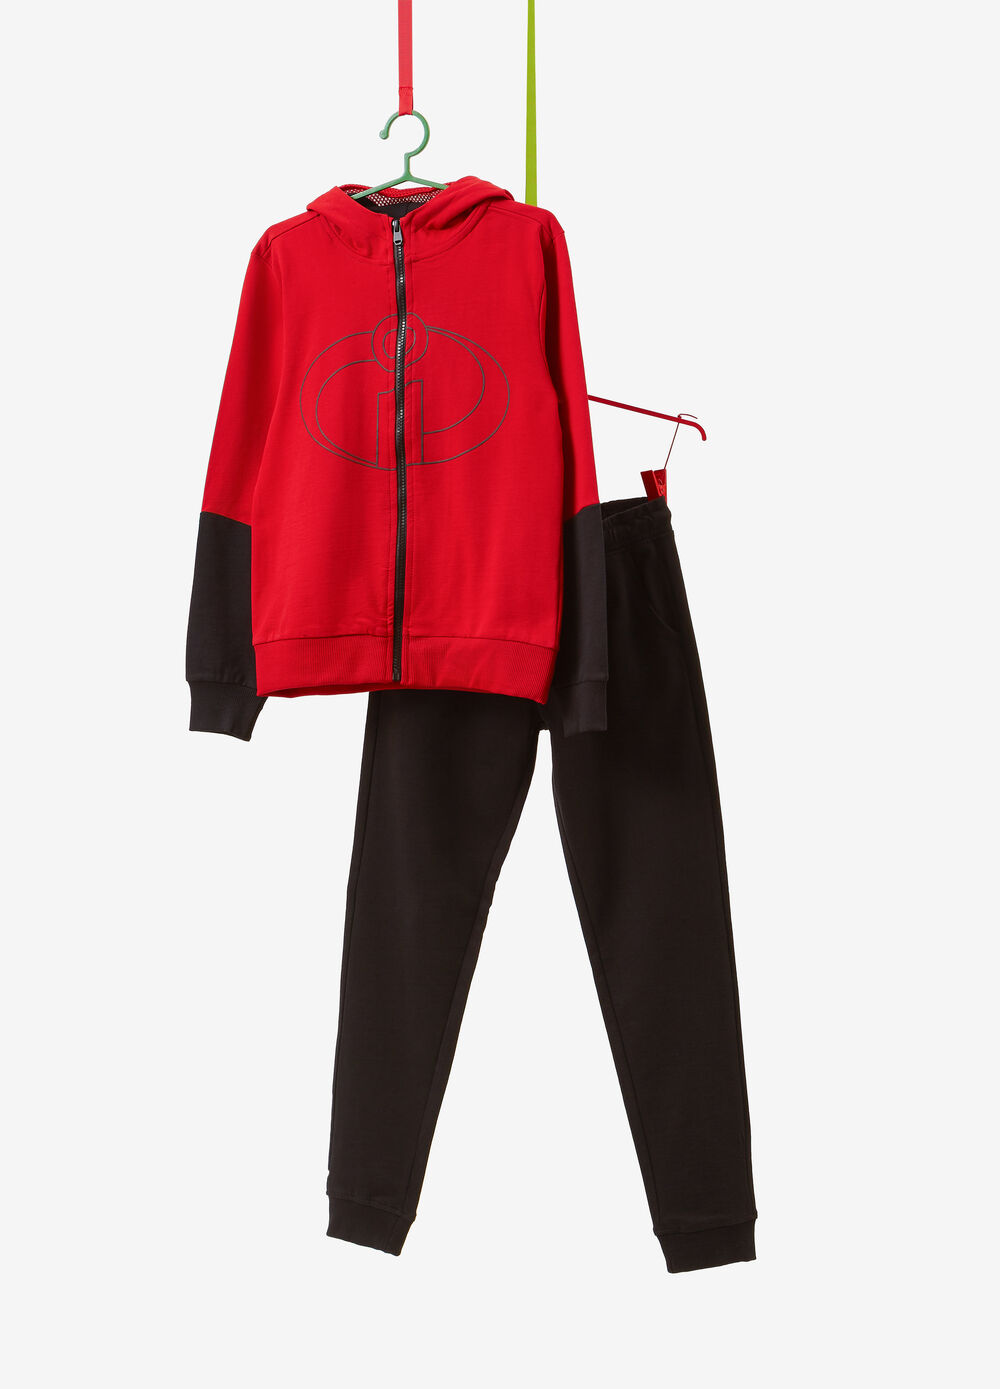 100% cotton The Incredibles tracksuit